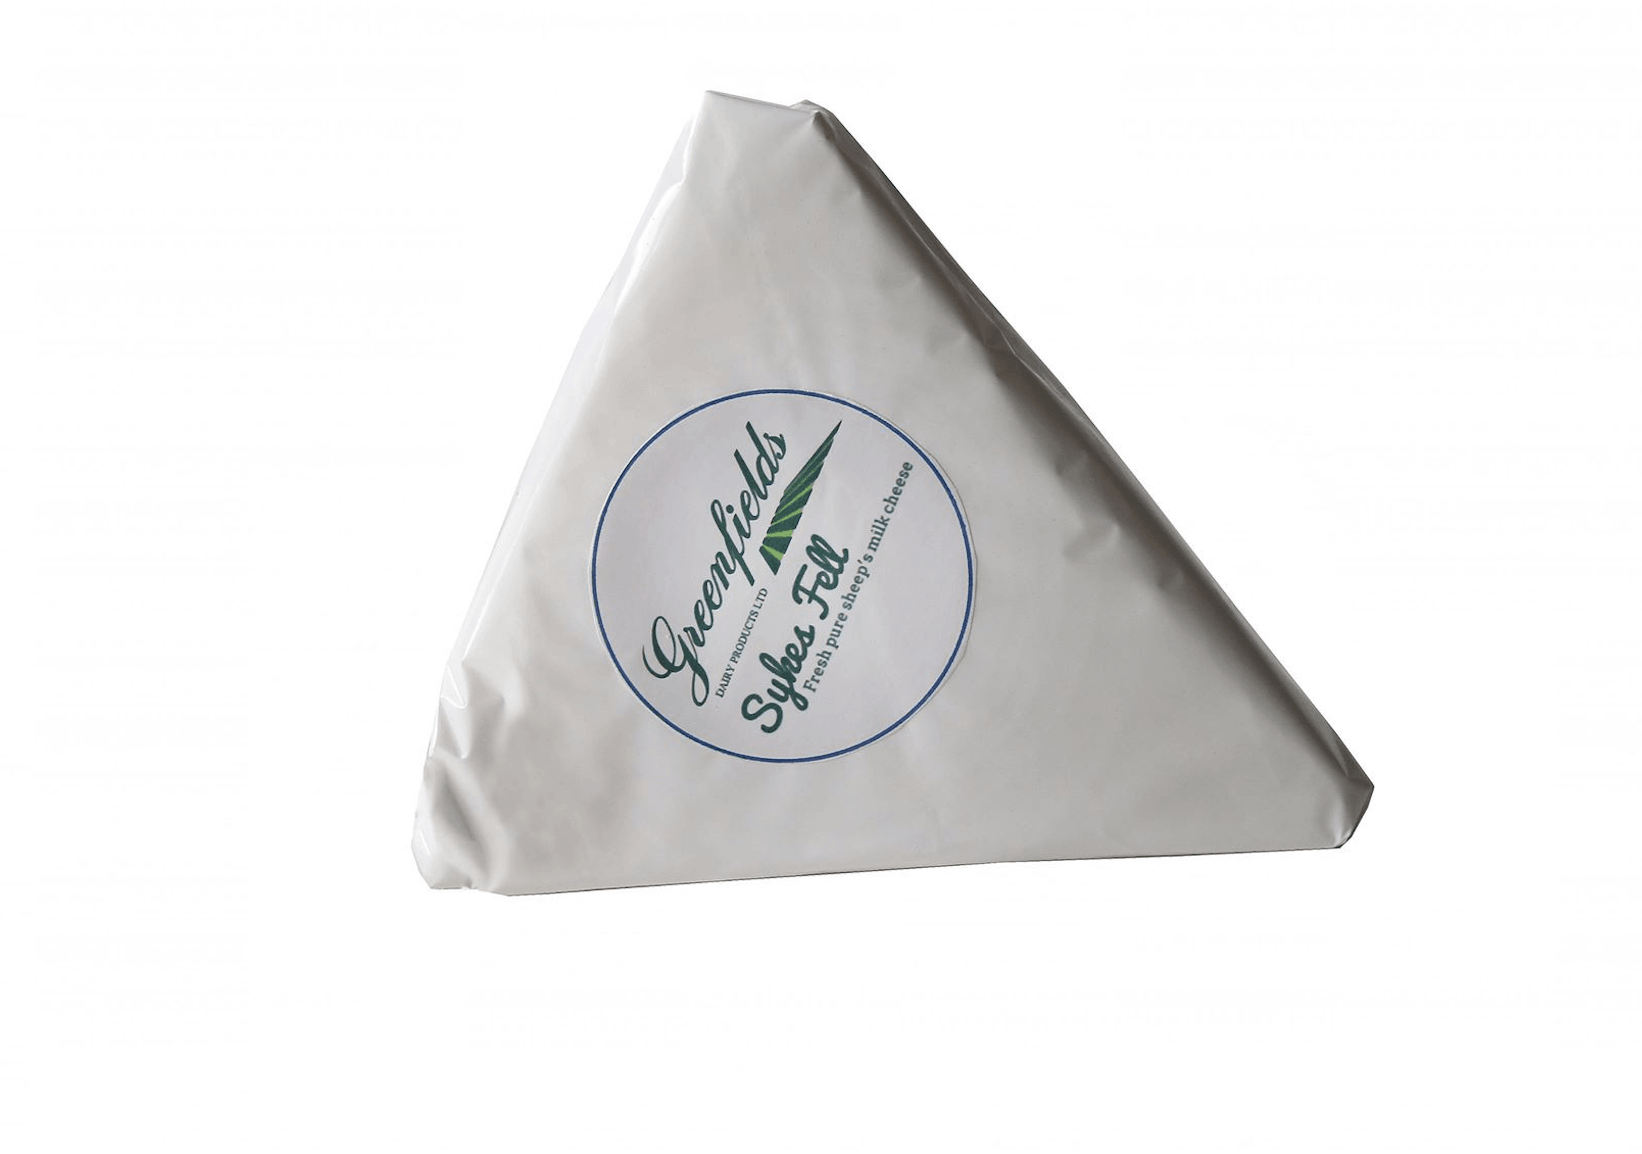 Sykes Fell Ewes Milk 200g - Celebration Cheeses